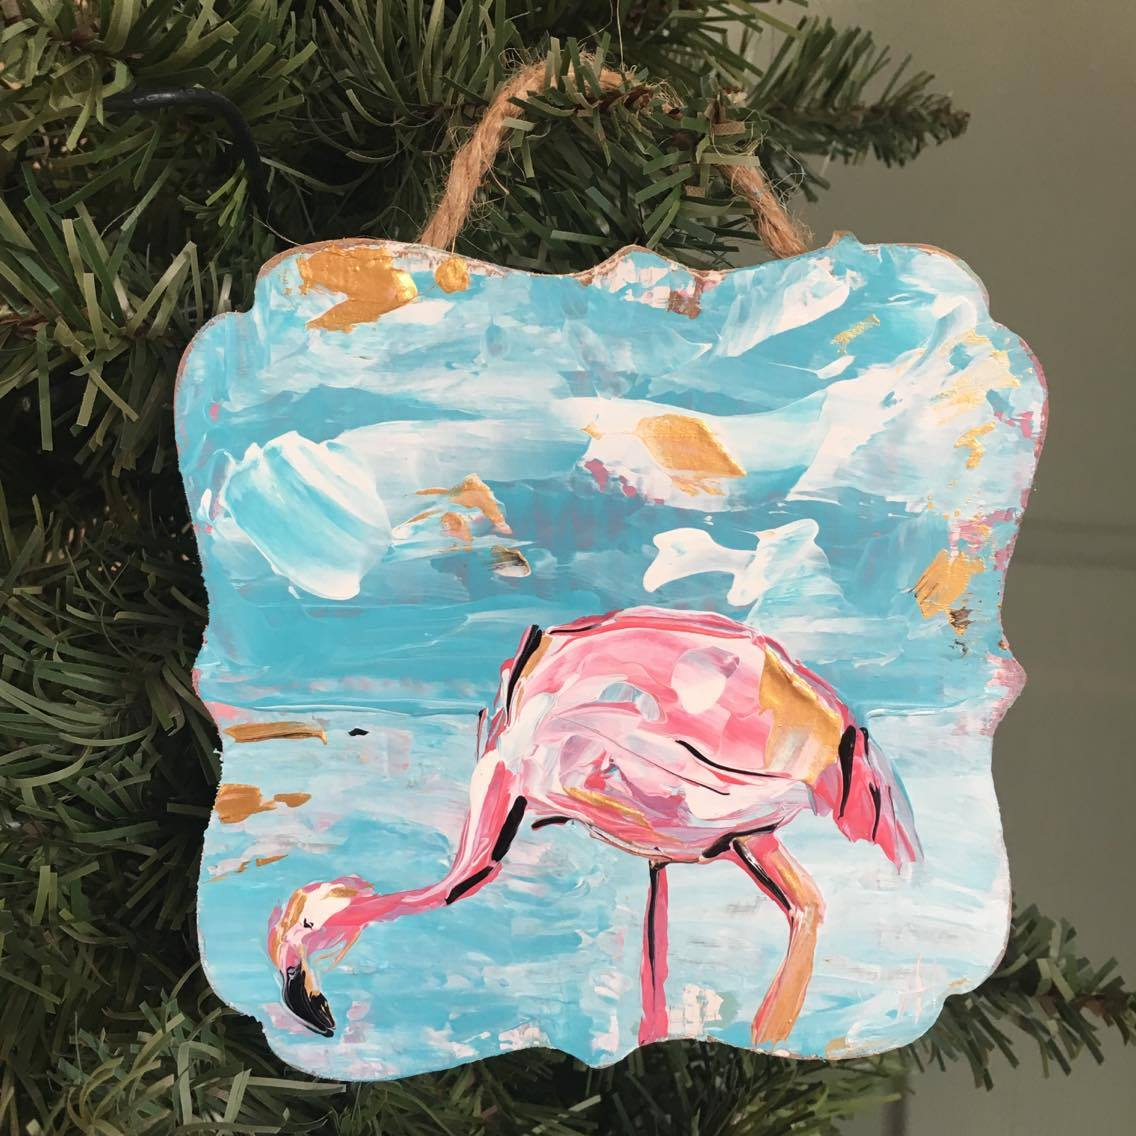 Flamingo lovers Christmas ornament. One of a kind ornament exclusively at The Little Bluebird Gallery | Art by Amanda Hilburn #flamingo #flamingoes #christmas #ornament #bird